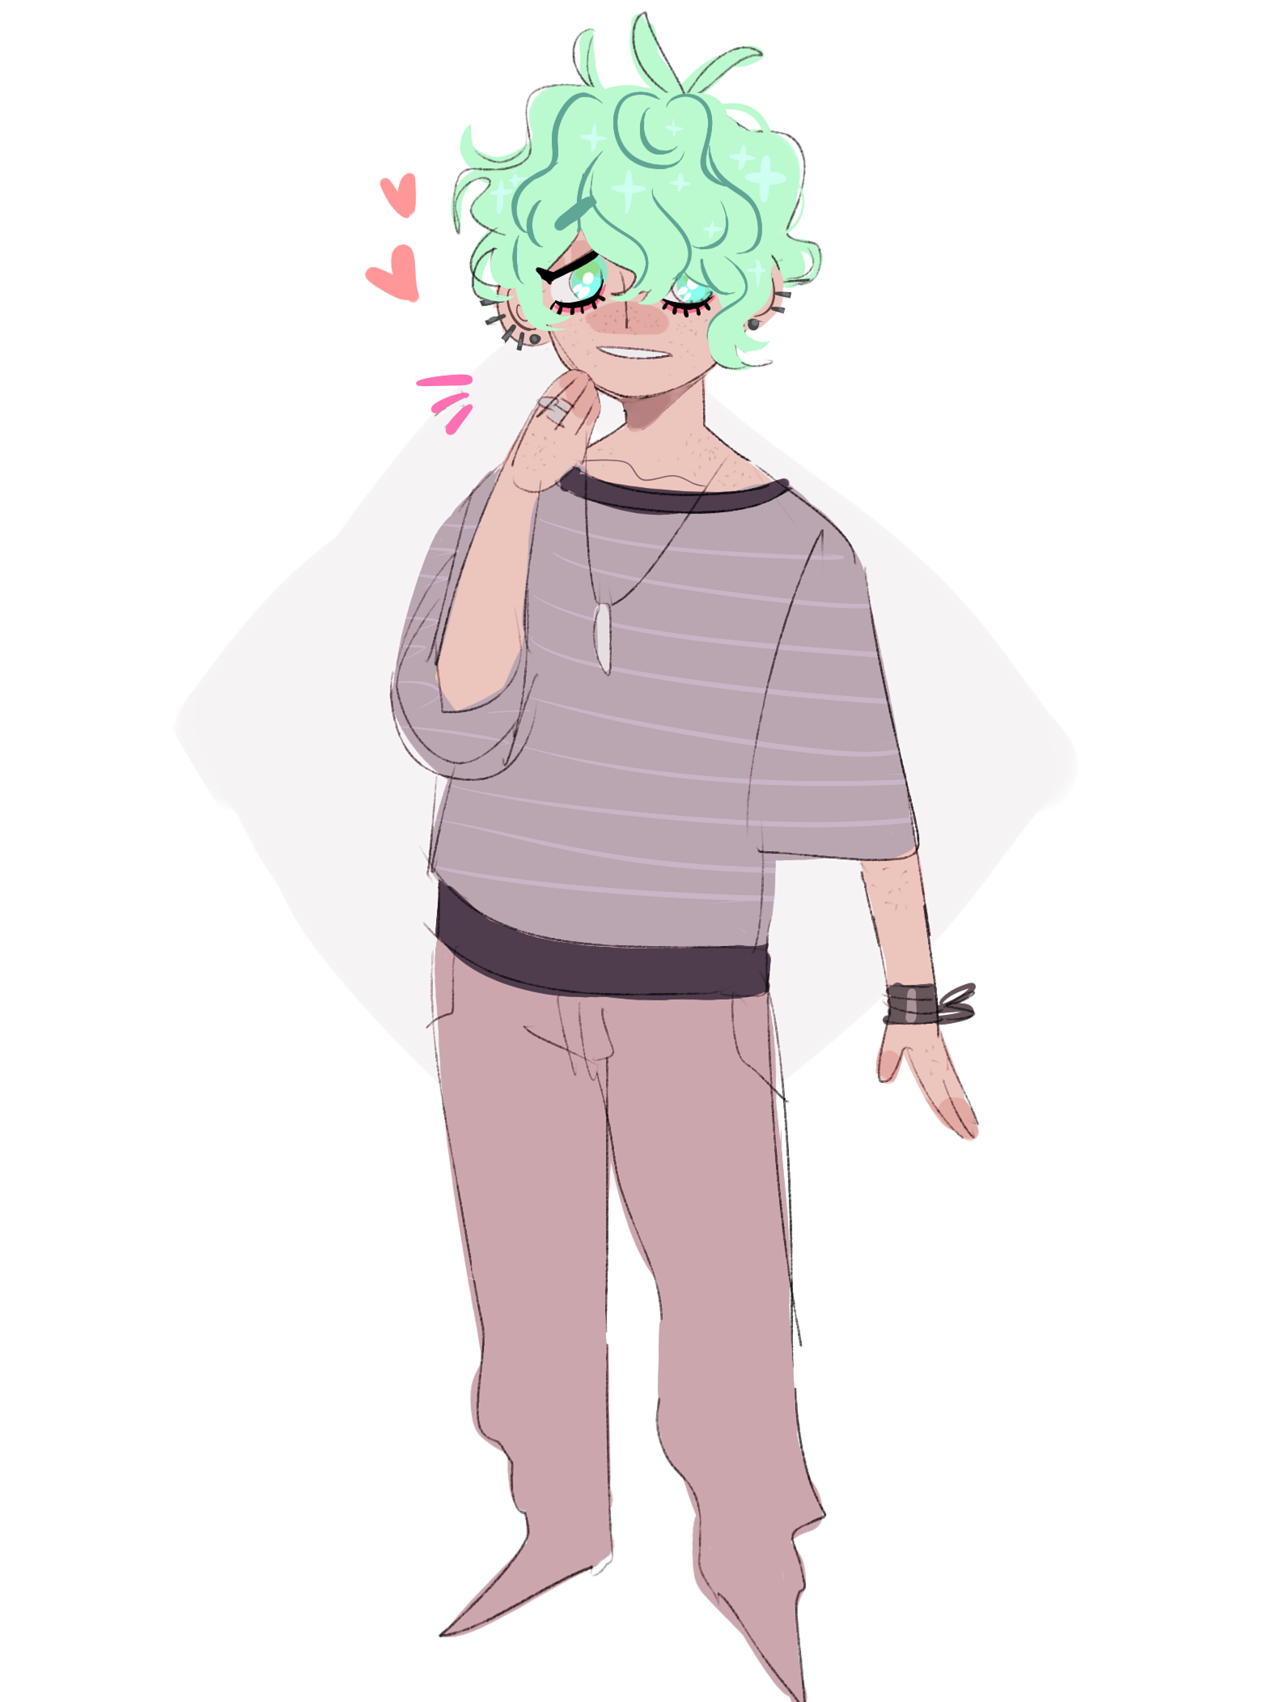 tiny rantaro | Ronpa of the Dang | Rantaro amami, Anime art, Art